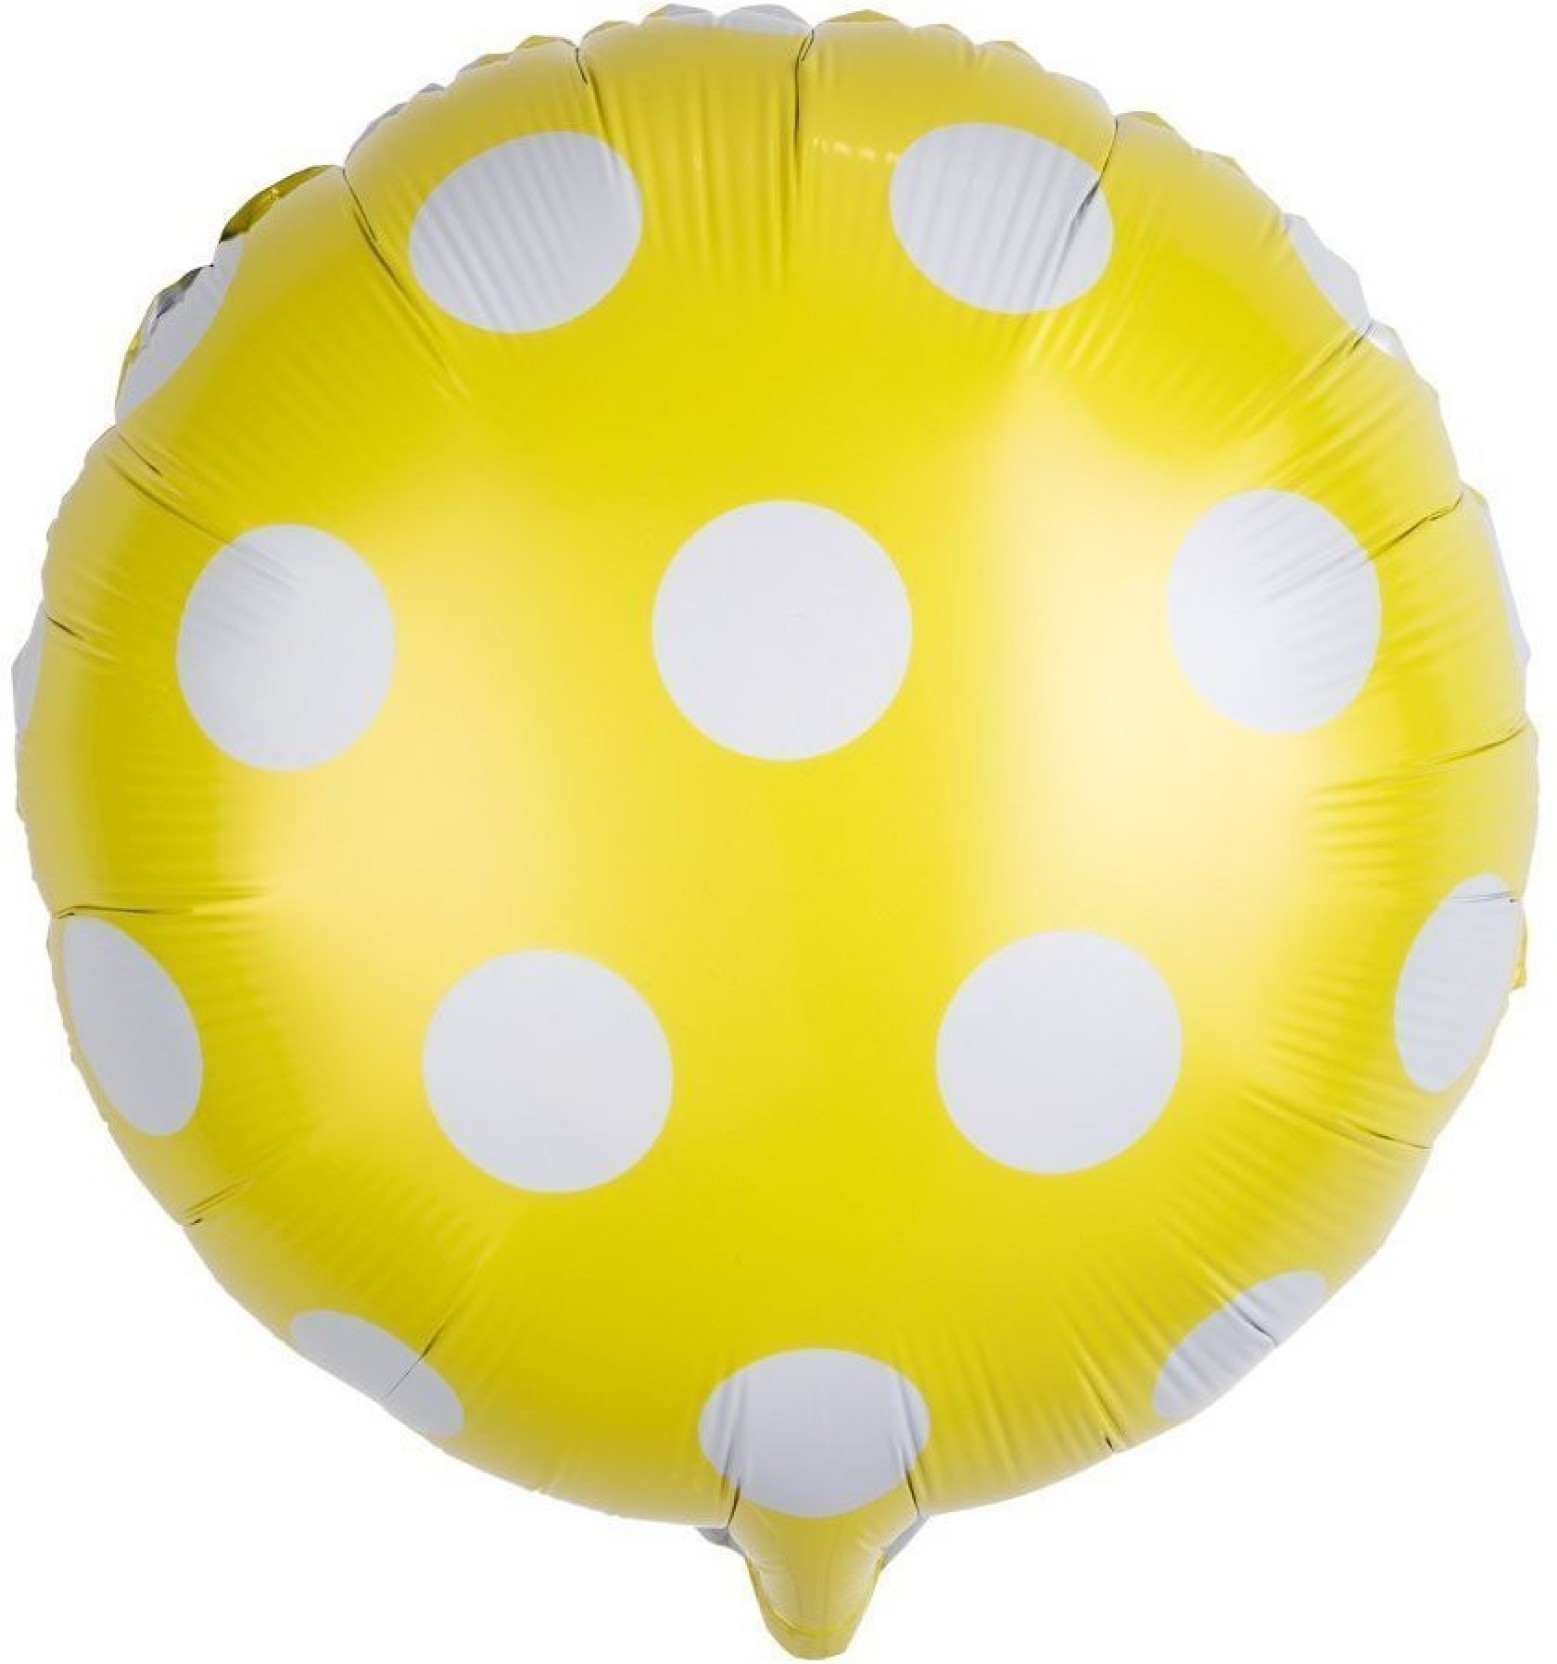 PARTY PROPZ Printed 18Inch Polka Dot Balloon Birthday Decorations Foil Mylar Balloons 5 Pcs Multicolor Pack Of